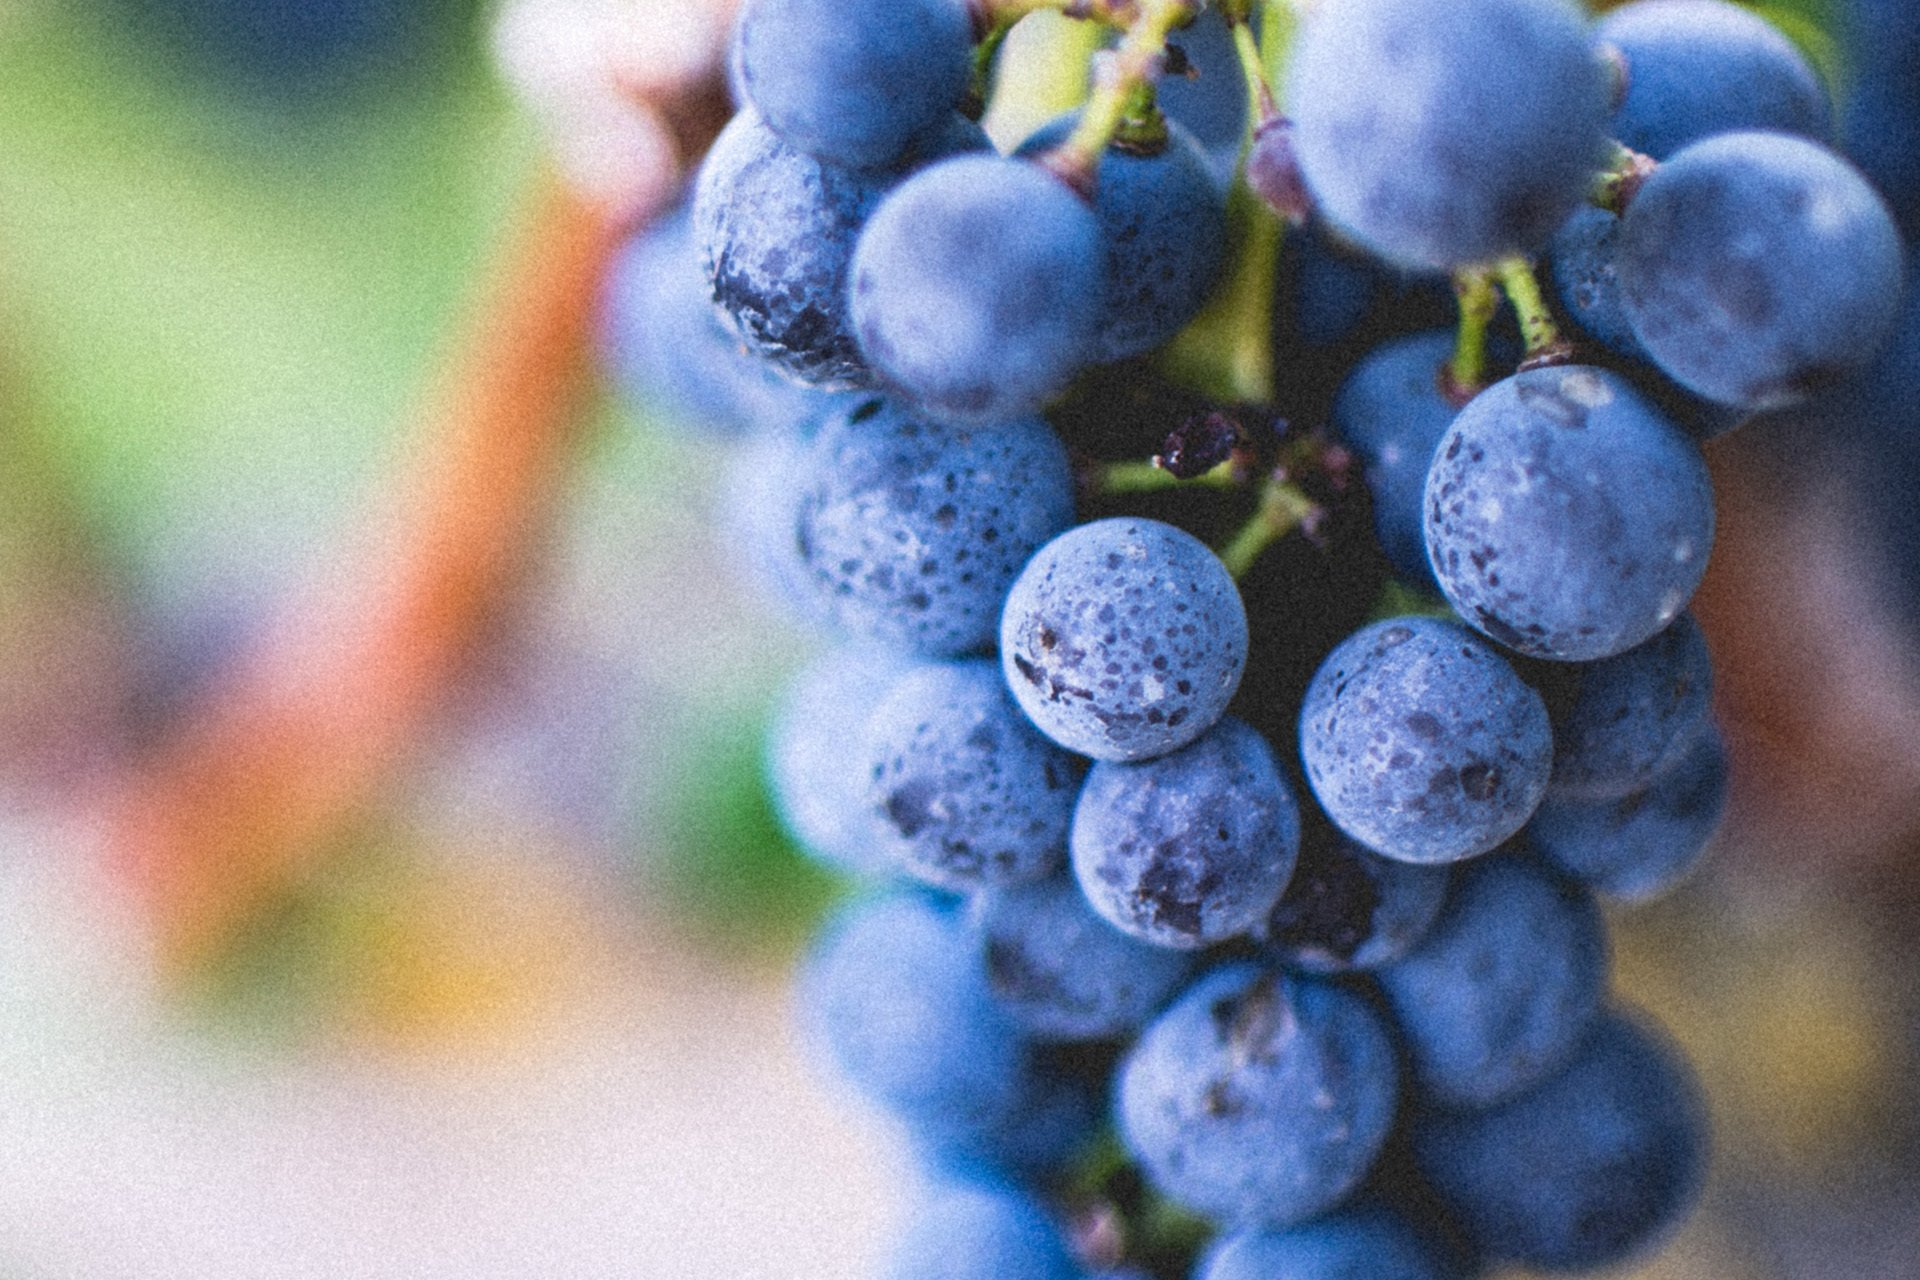 Close up of dark grapes